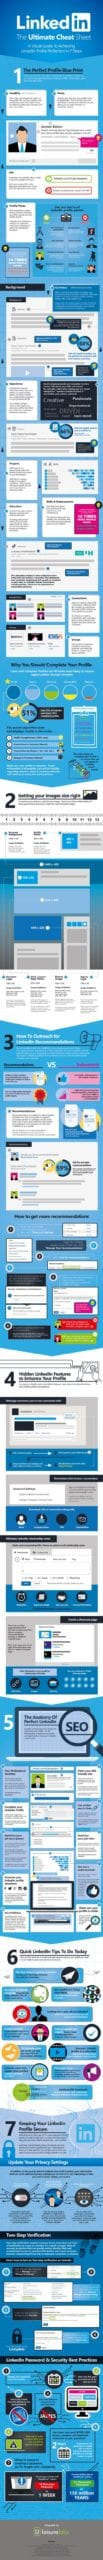 Healthcare IT LinkedIn Cheat Sheet